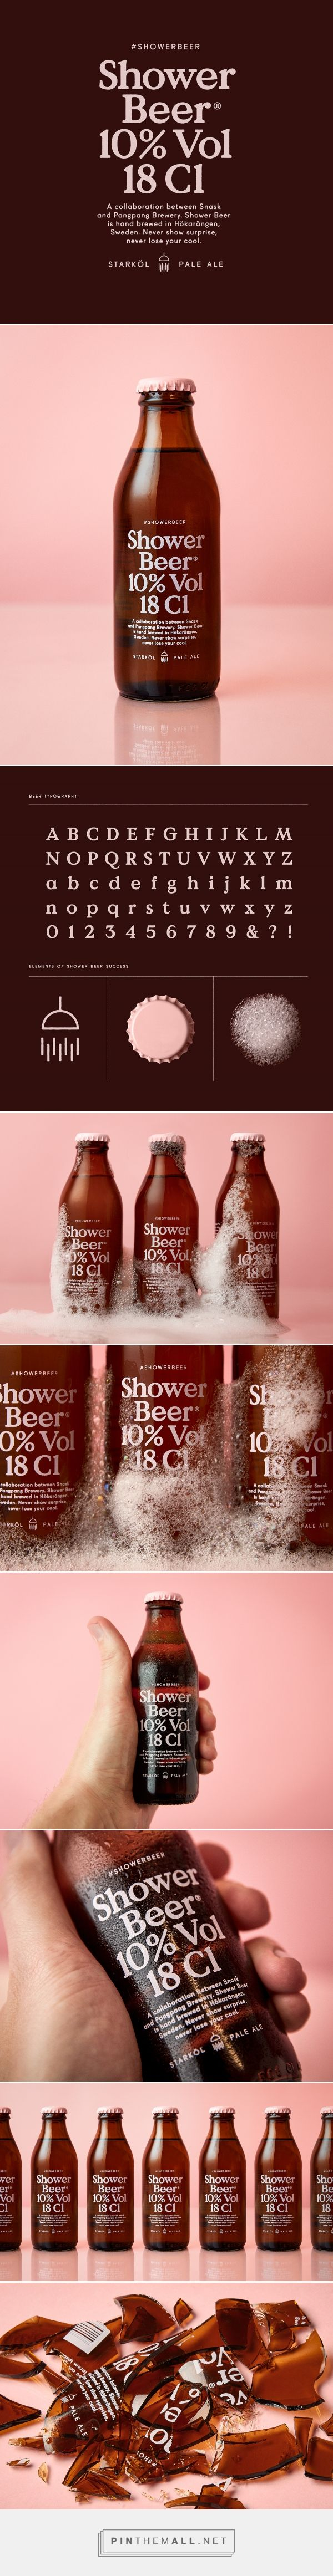 Shower Beer on Behance - created via https://pinthemall.net